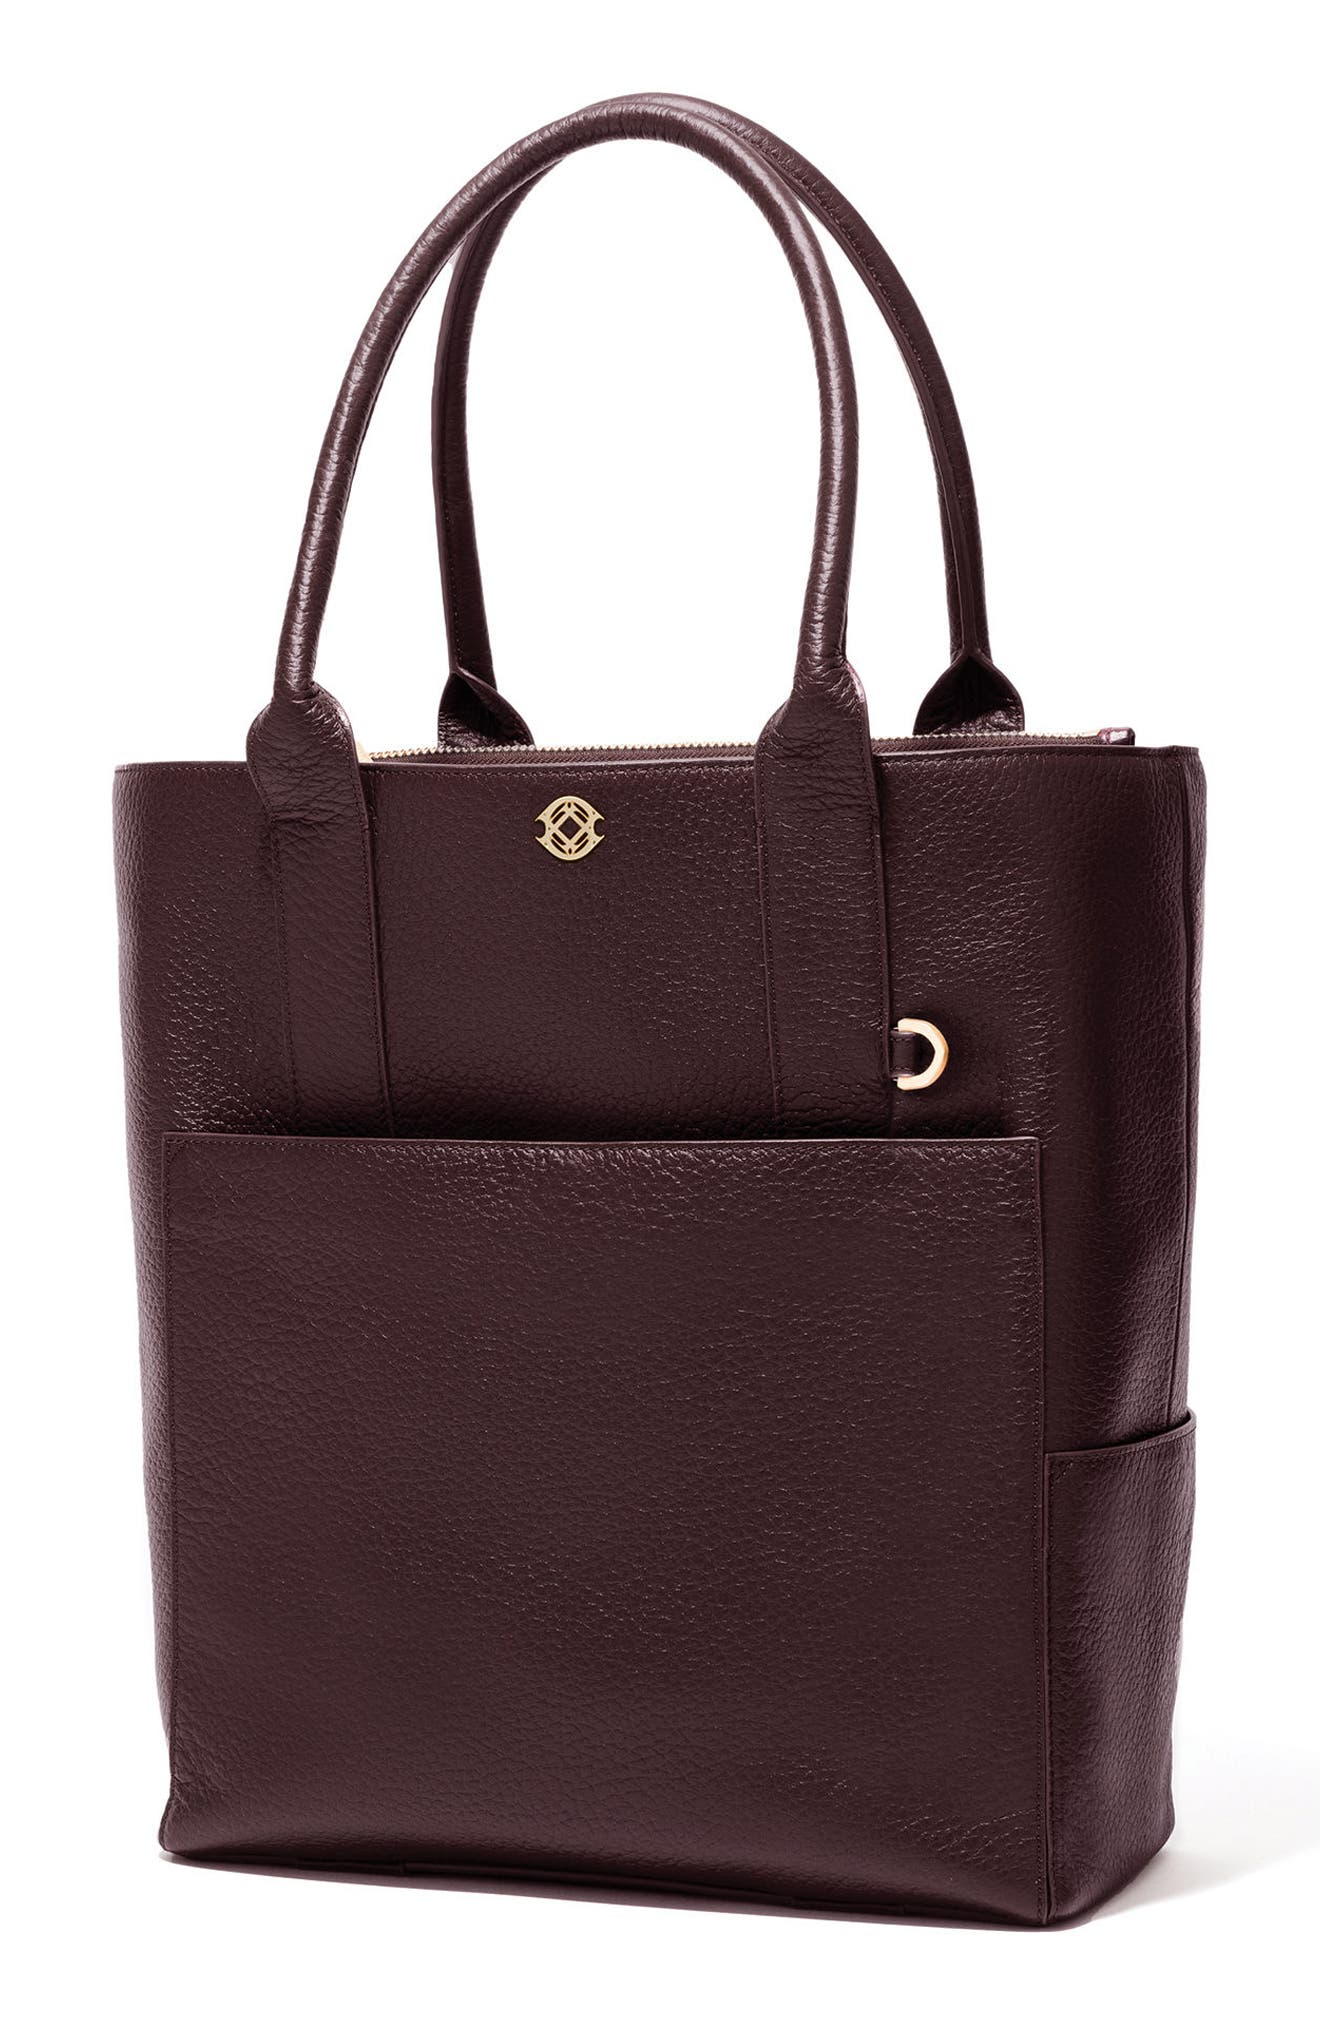 Charlie Leather Tote,                             Alternate thumbnail 5, color,                             Oxblood